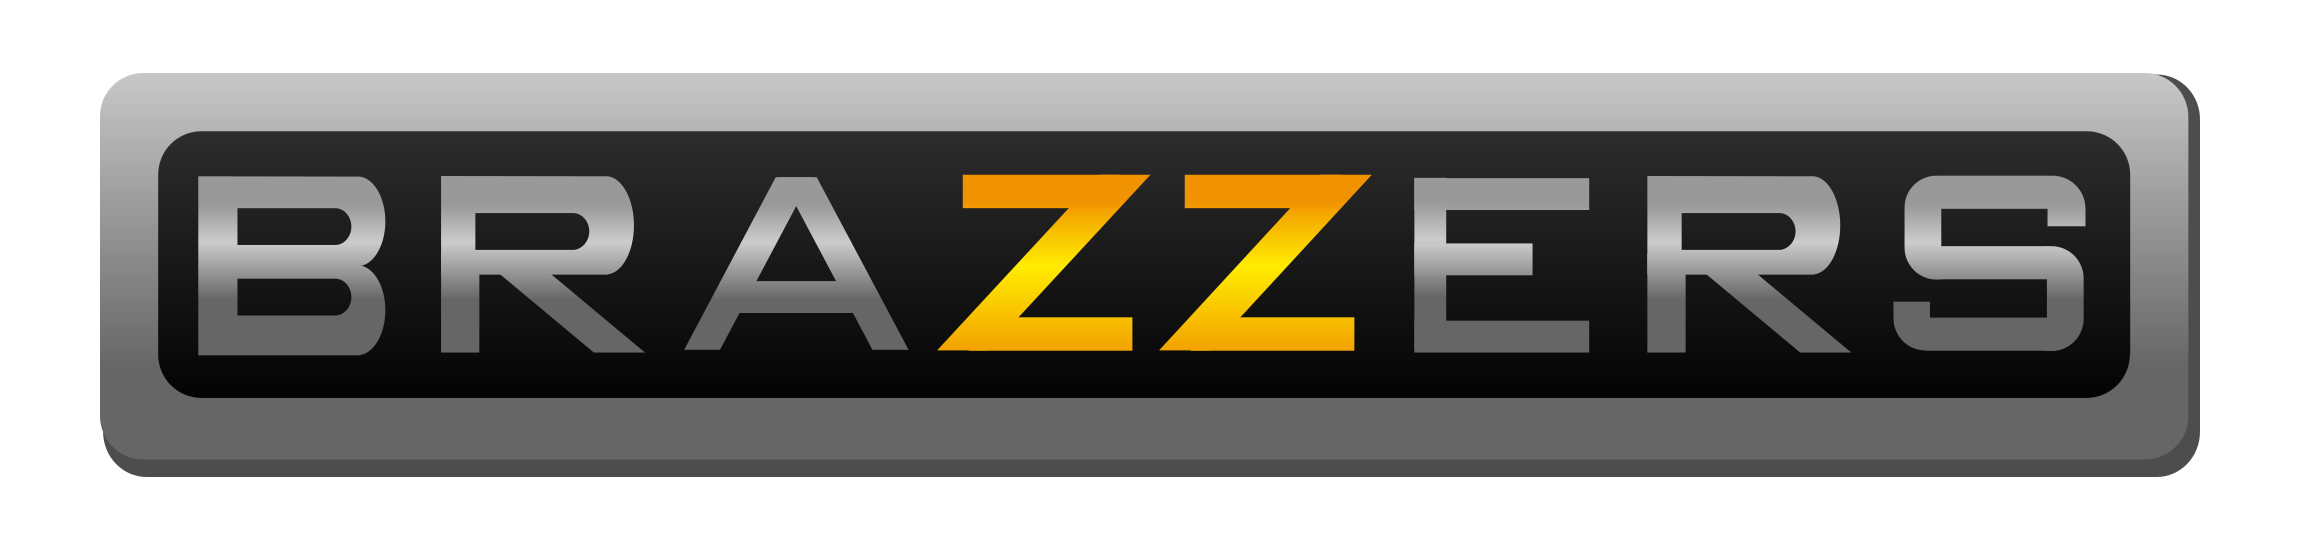 Brazzers logo png. Symbol meaning history and